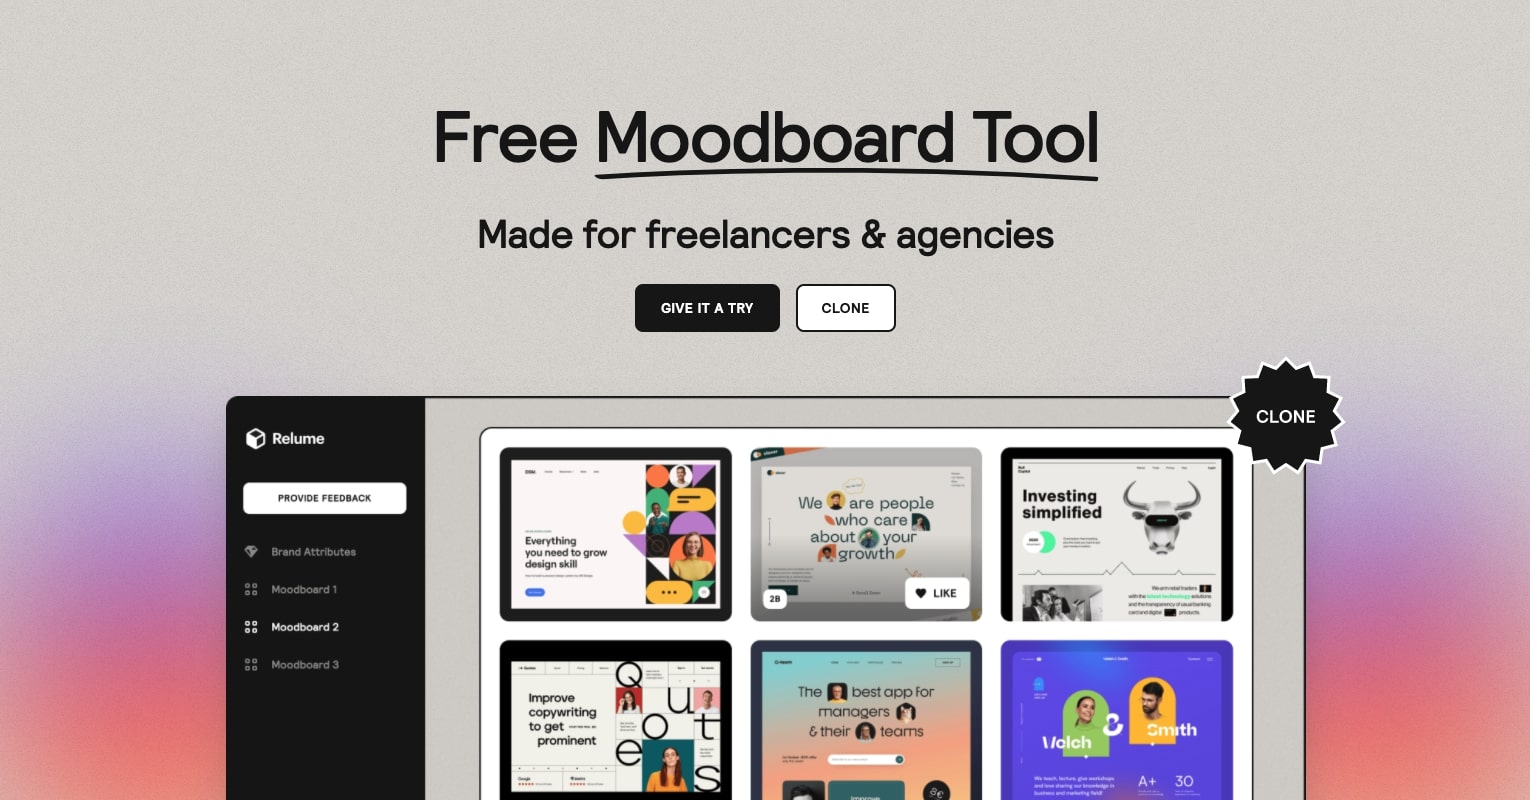 An image of Relume's Moodboard Tool landing page.